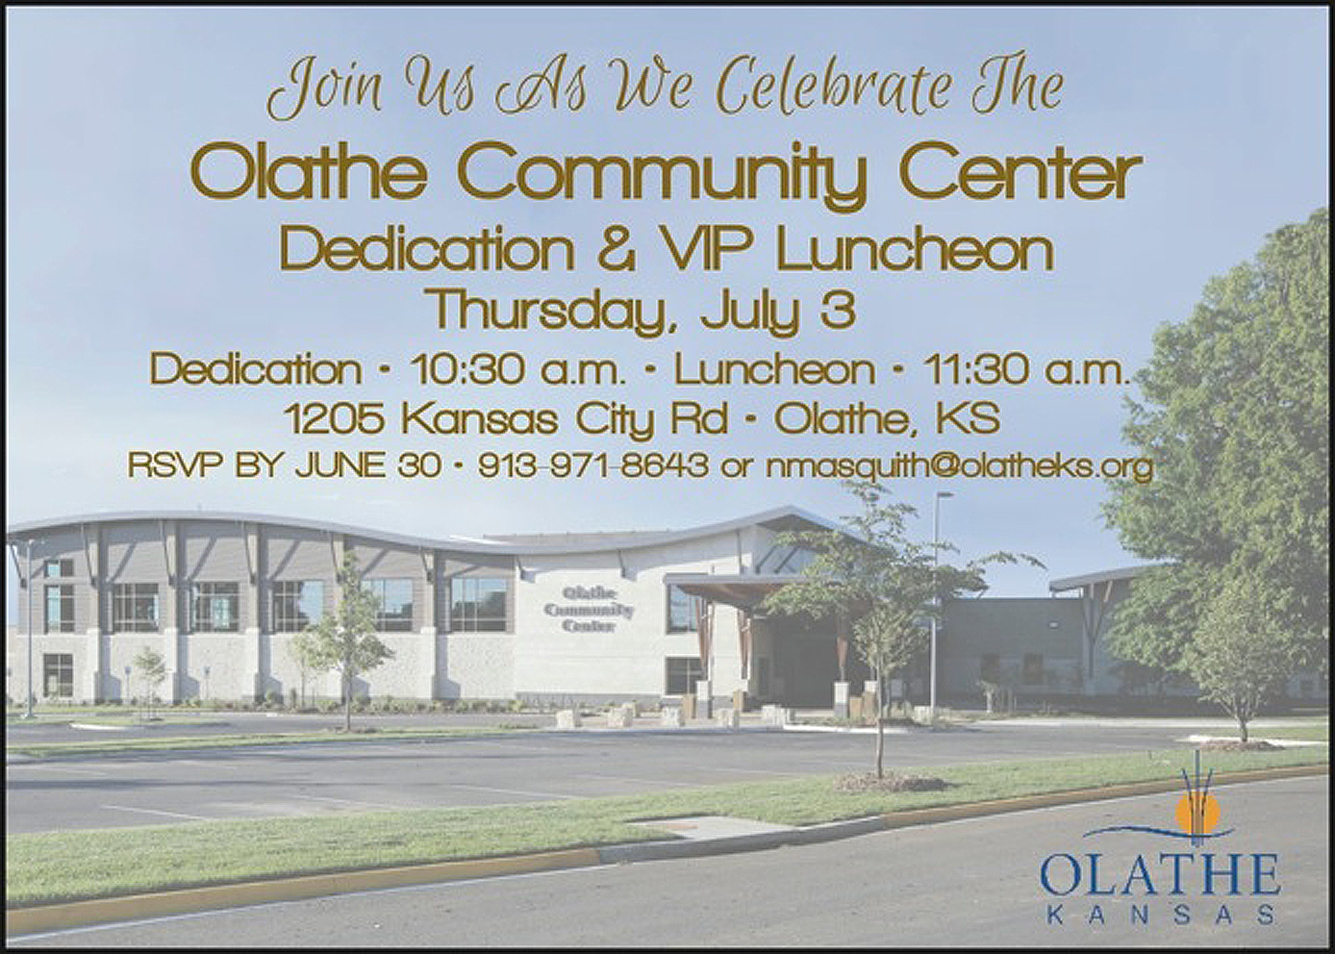 Olathe Community Center 2014